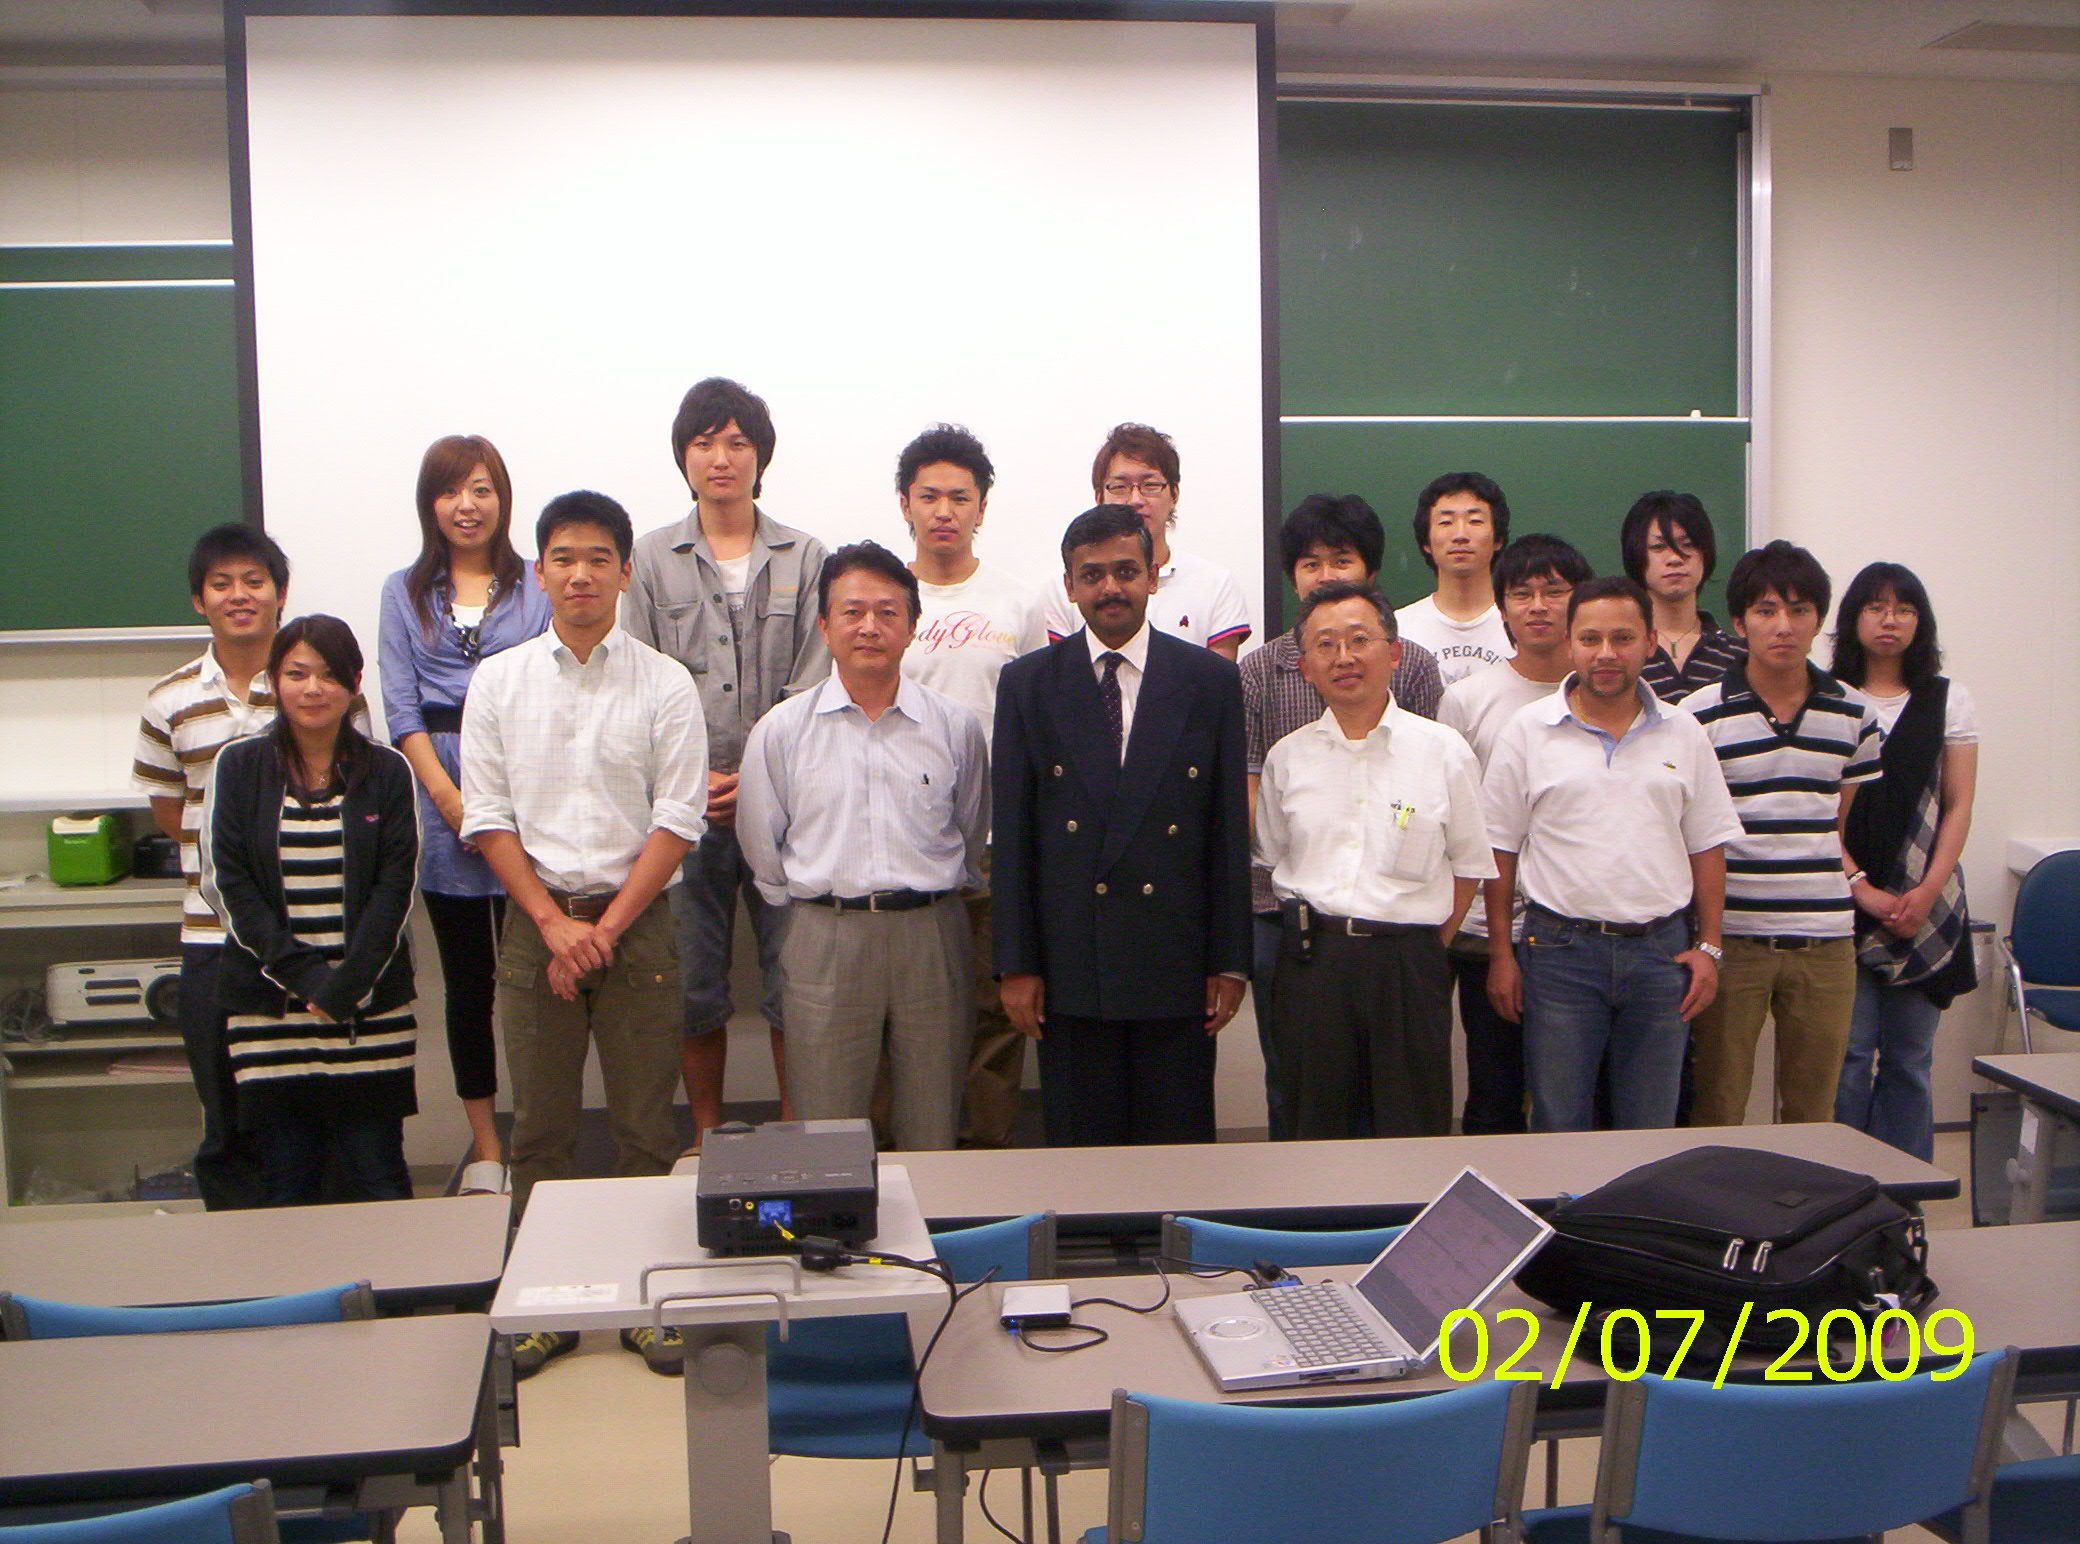 undergraduate thesis on civil engineering Explore civil engineering thesis topics or ideas 2016, civil engineering seminar topics 2016, latest ieee civil construction seminars list, top advanced seminar papers 2015 2016, recent ieee essay topics, speech ideas, dissertation, ce new thesis, research ieee ce seminar topics, reports, synopsis, advantanges, disadvantages, abstracts, presentation slides free download pdf, doc and ppt for .